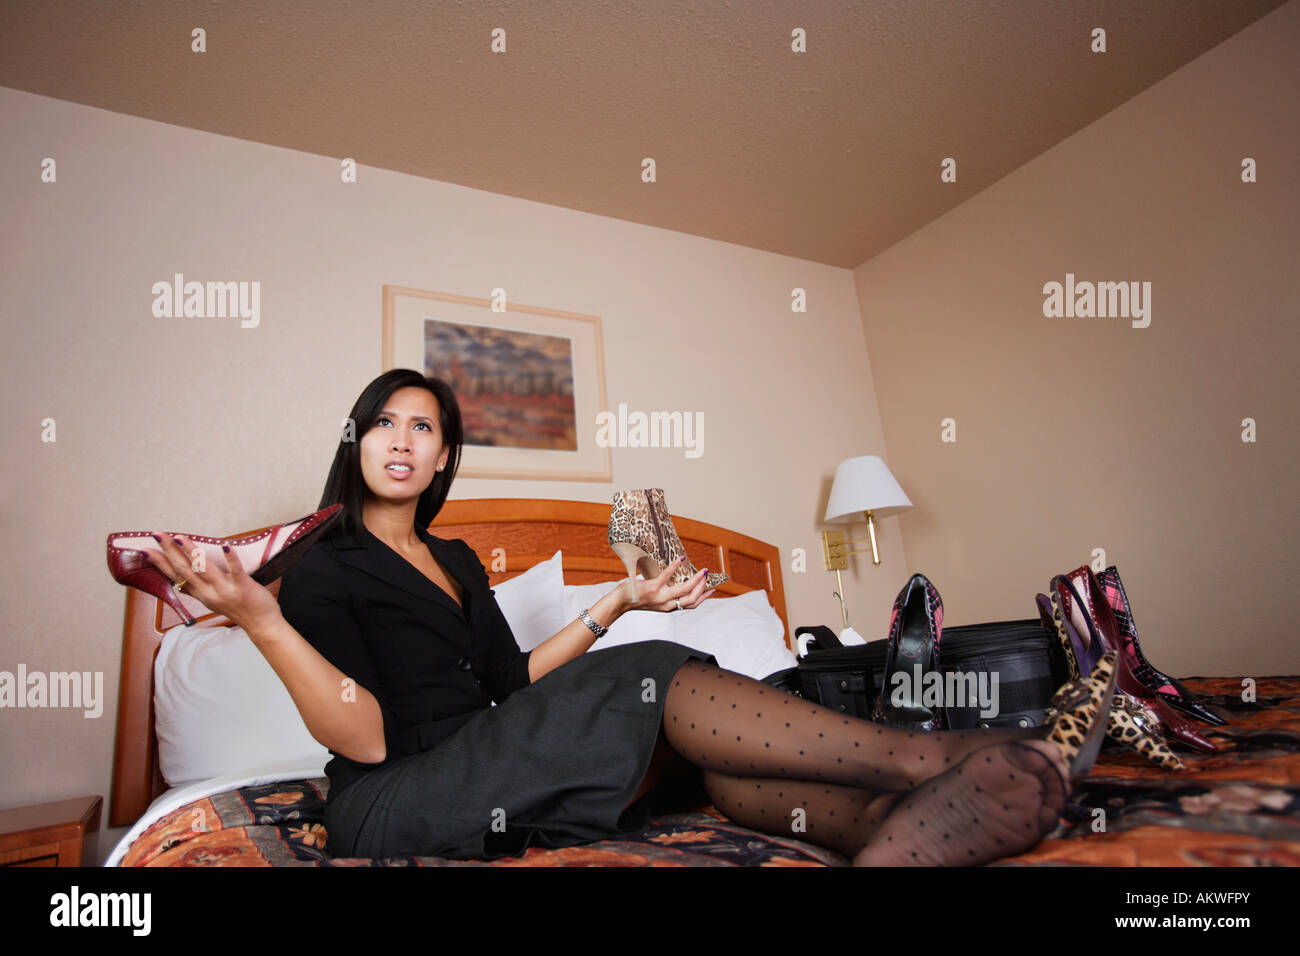 A woman comparing shoes Stock Photo